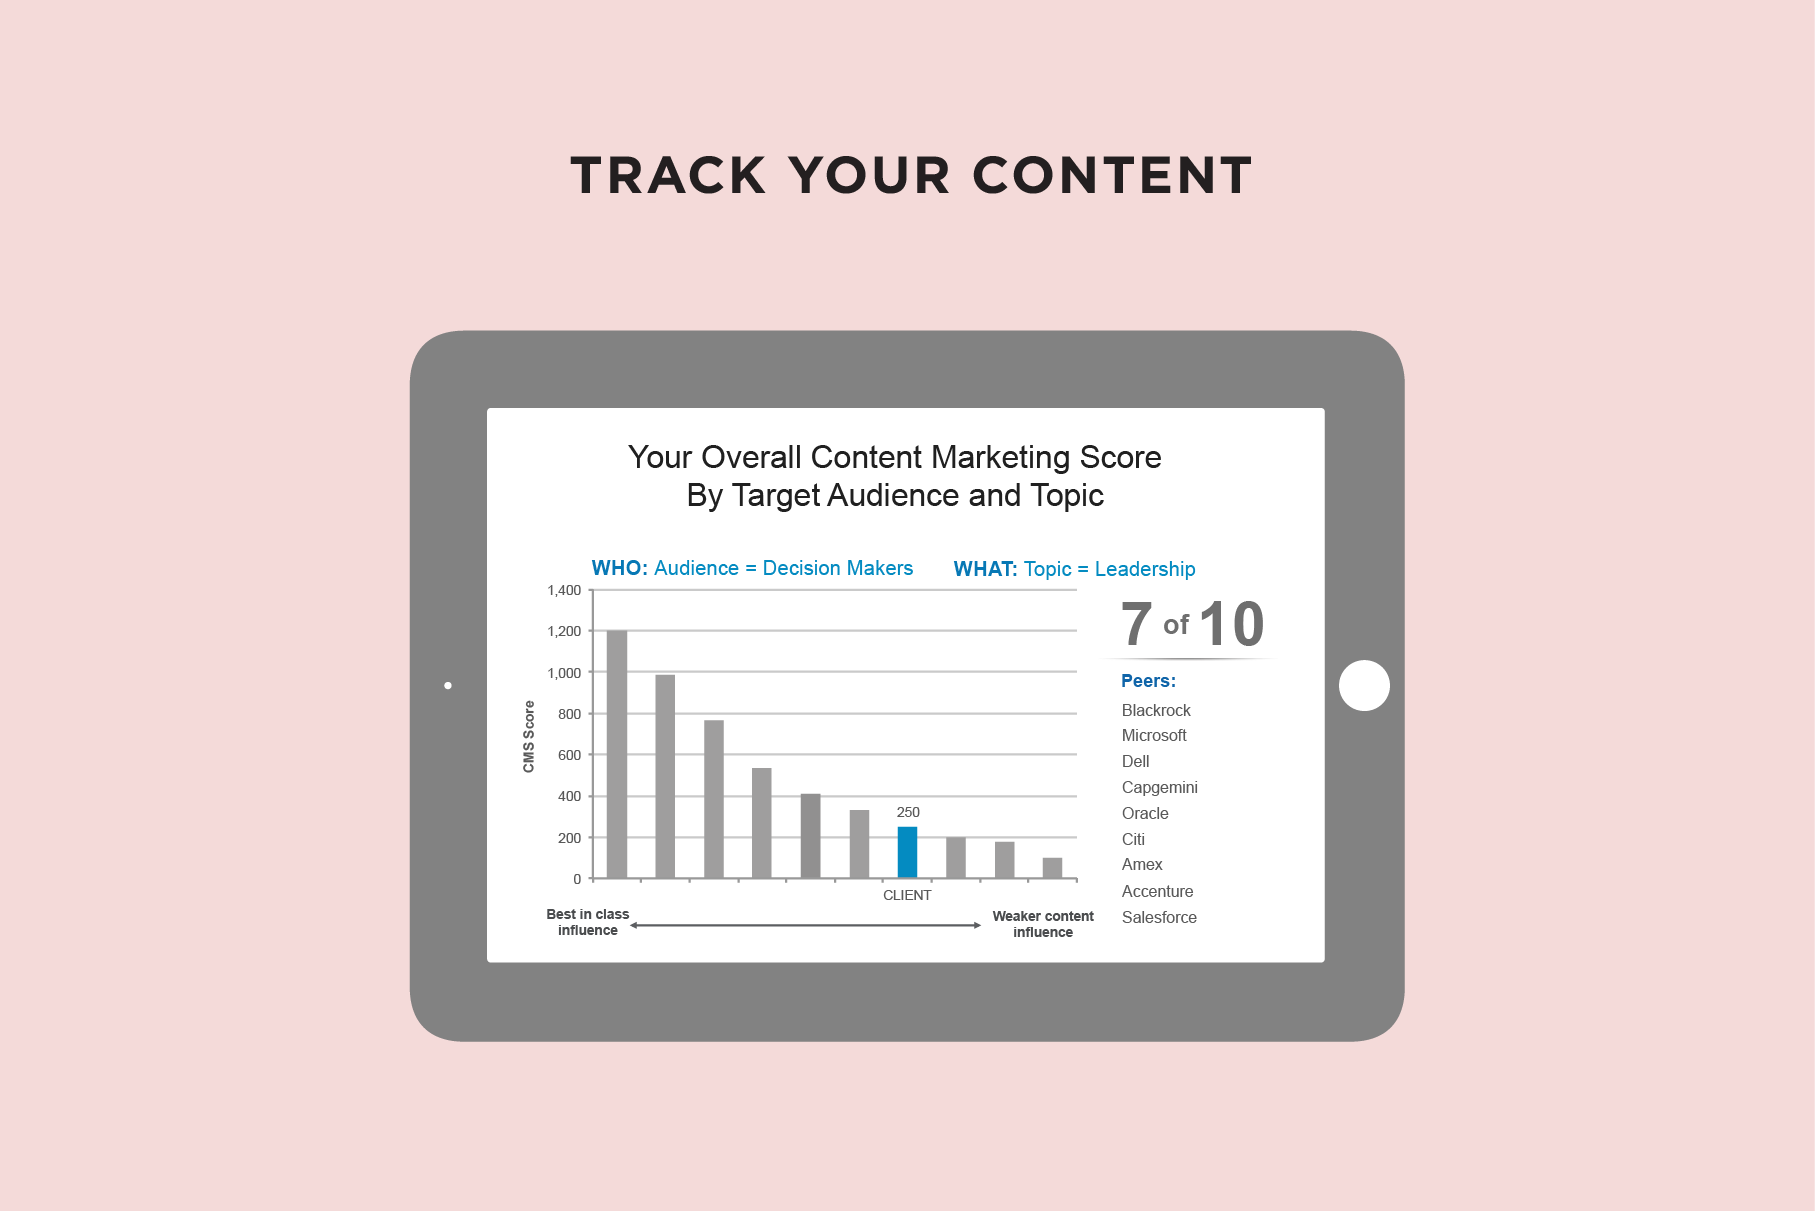 Create a LinkedIn profile and track your content